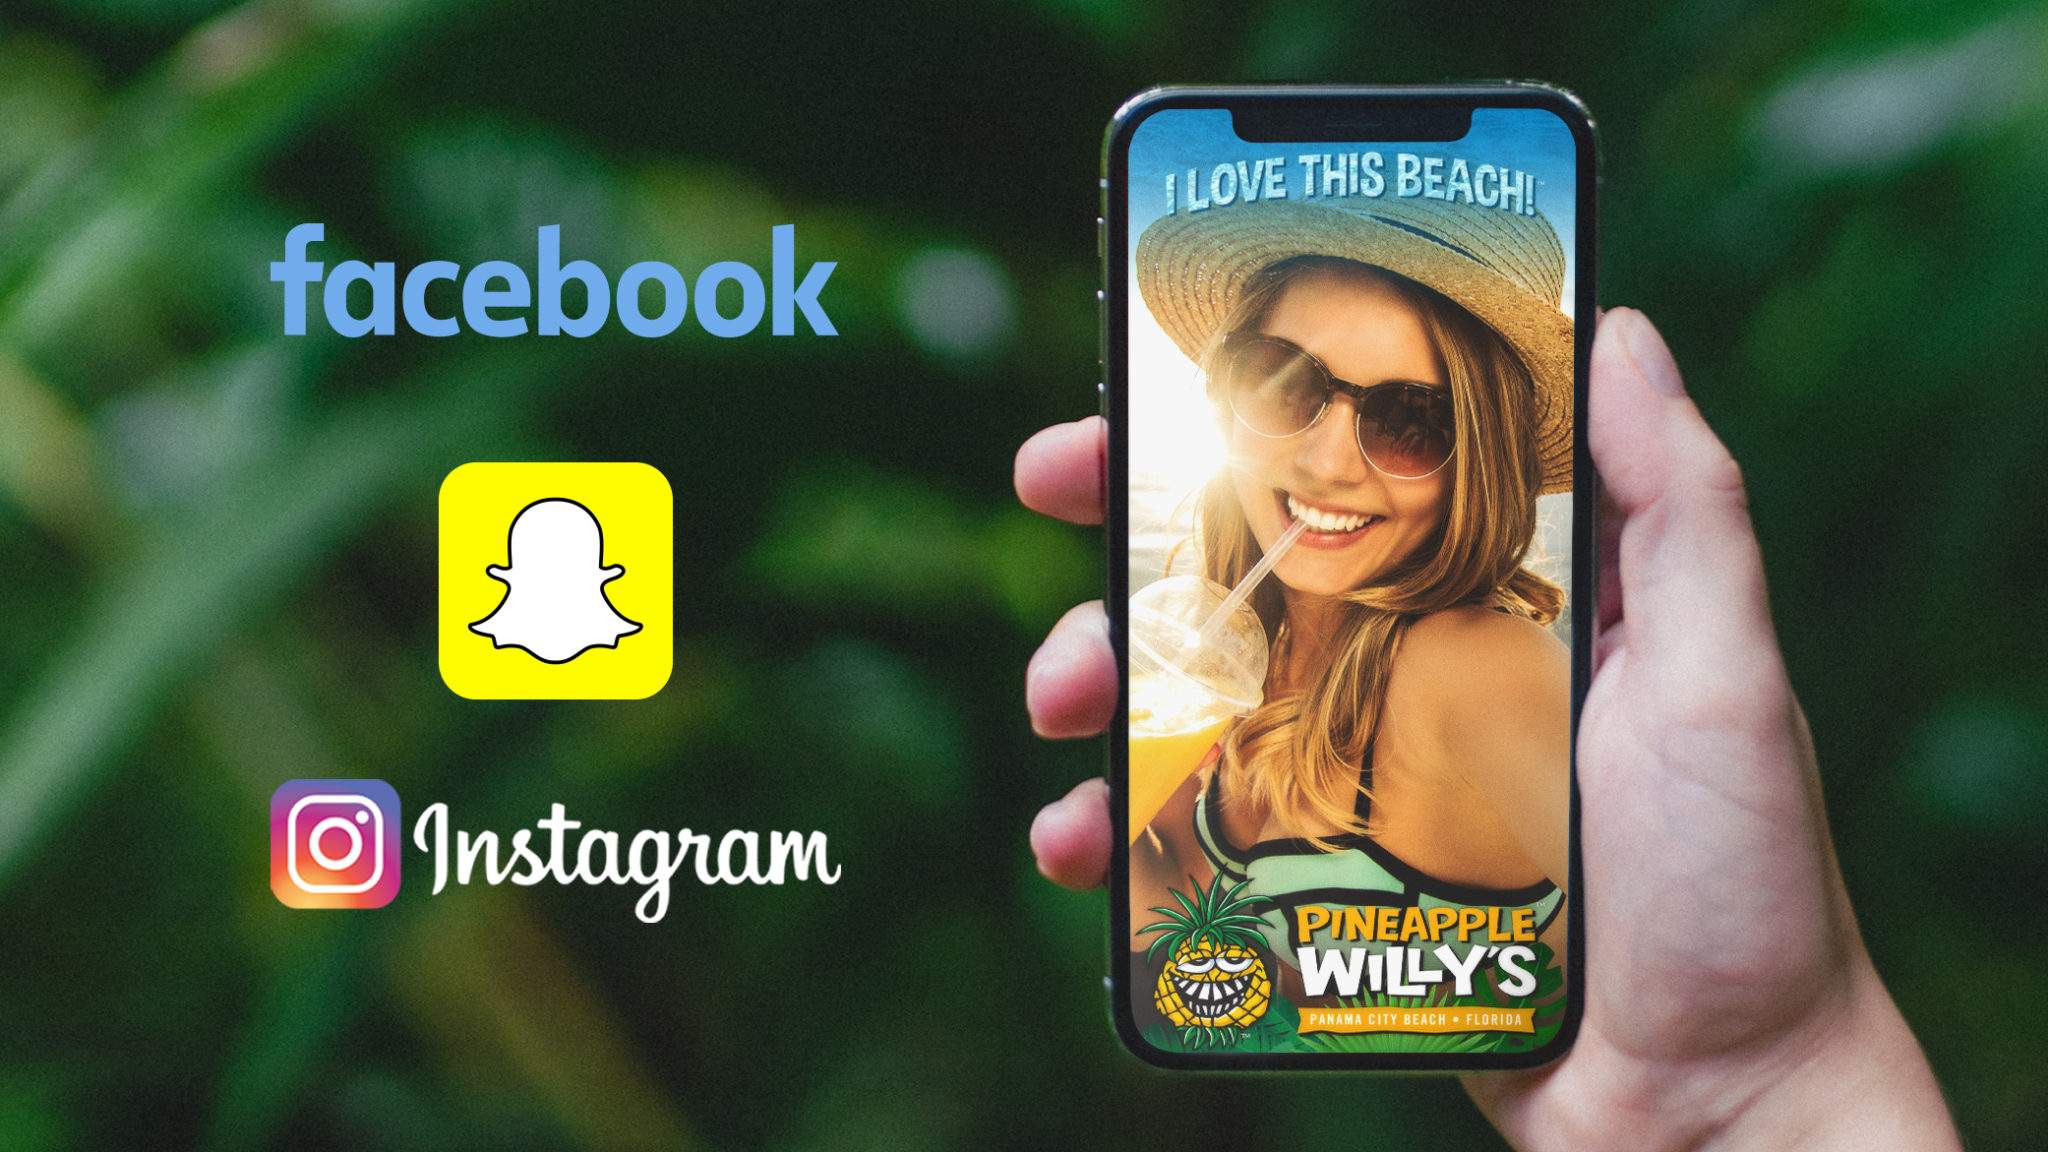 An image of the Pineapple WIlly's snapchat filter showing the power of a strong social media strategy.